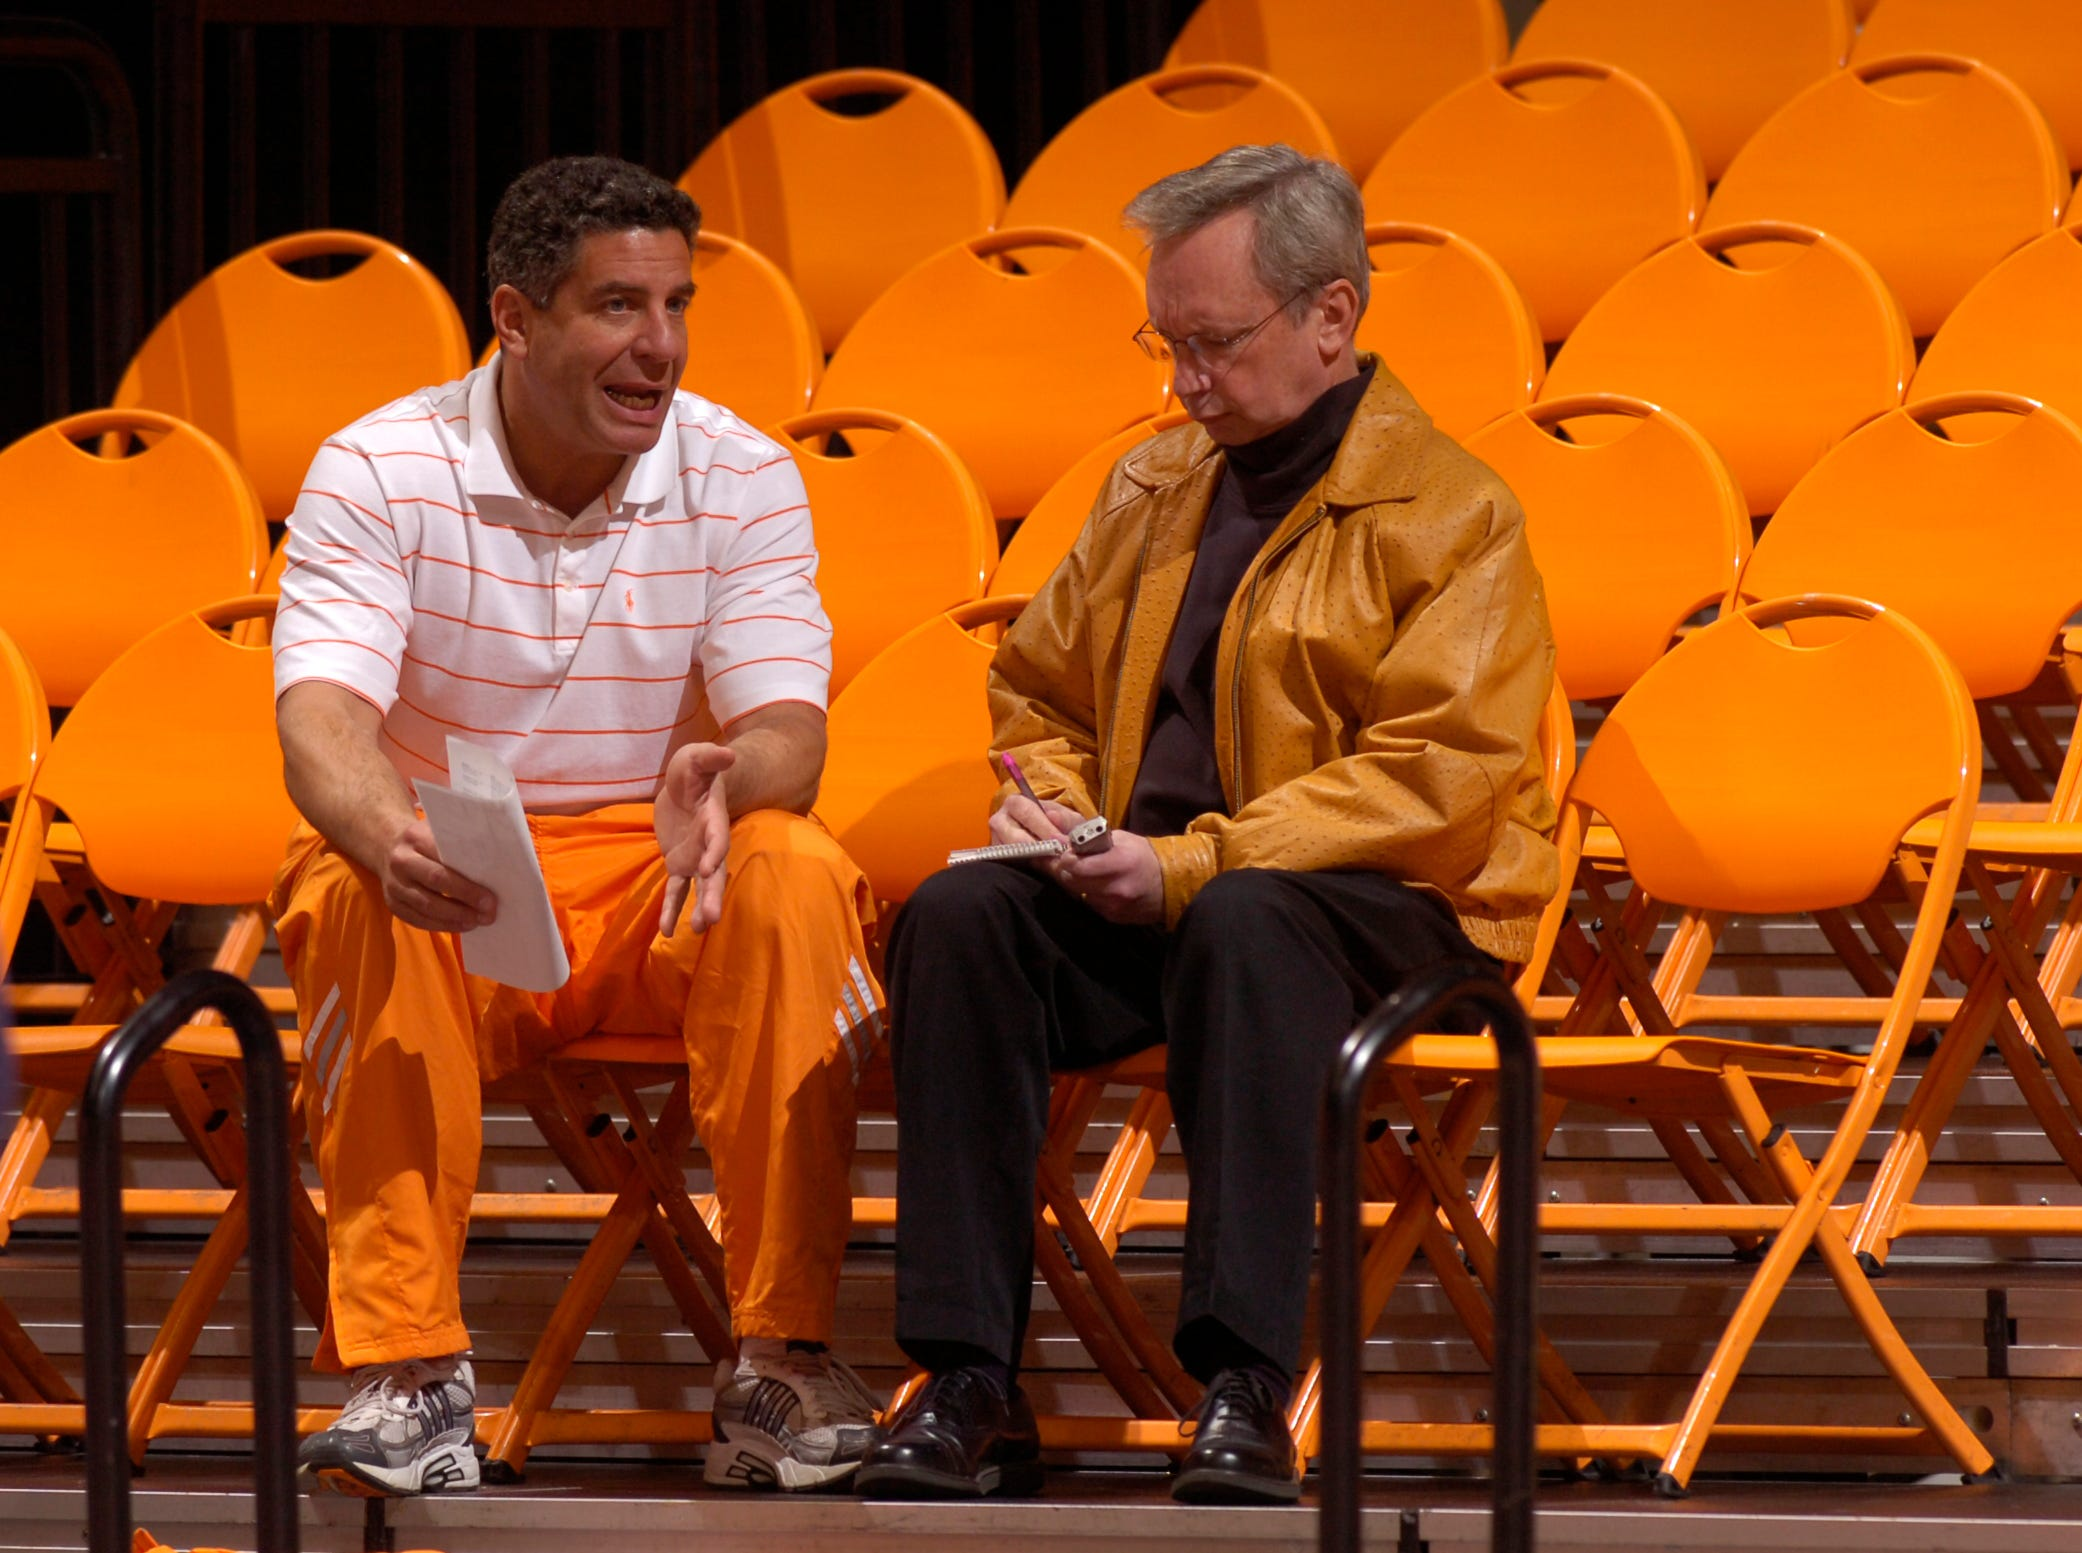 Tennessee men's basketball coach Bruce Pearl, left, talks with News Sentinel sports editor John Adams Monday, Dec. 19, 2005, at Thompson-Boling Arena.